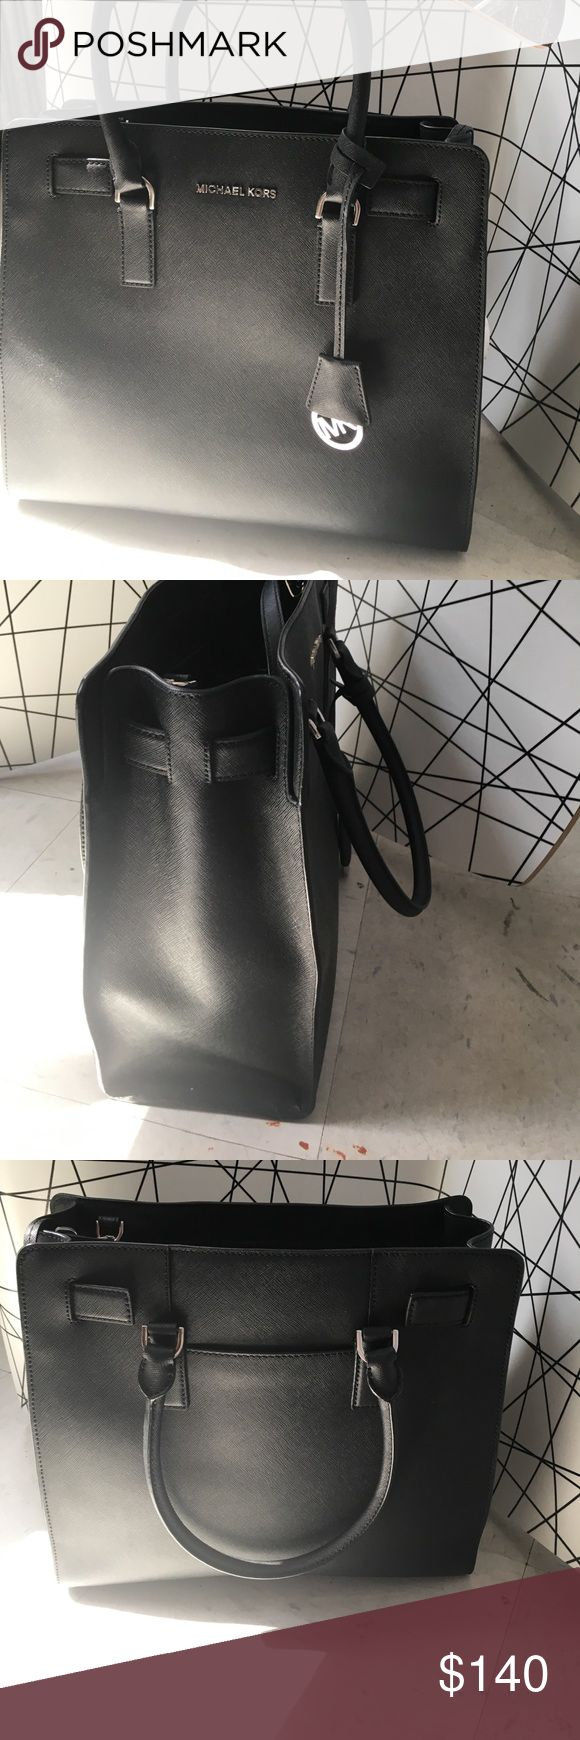 Black Michael Kors Bag Medium size authentic Michael Kors Bag. With Silver hardware. Only worn once or twice KORS Michael Kors Bags Shoulder Bags